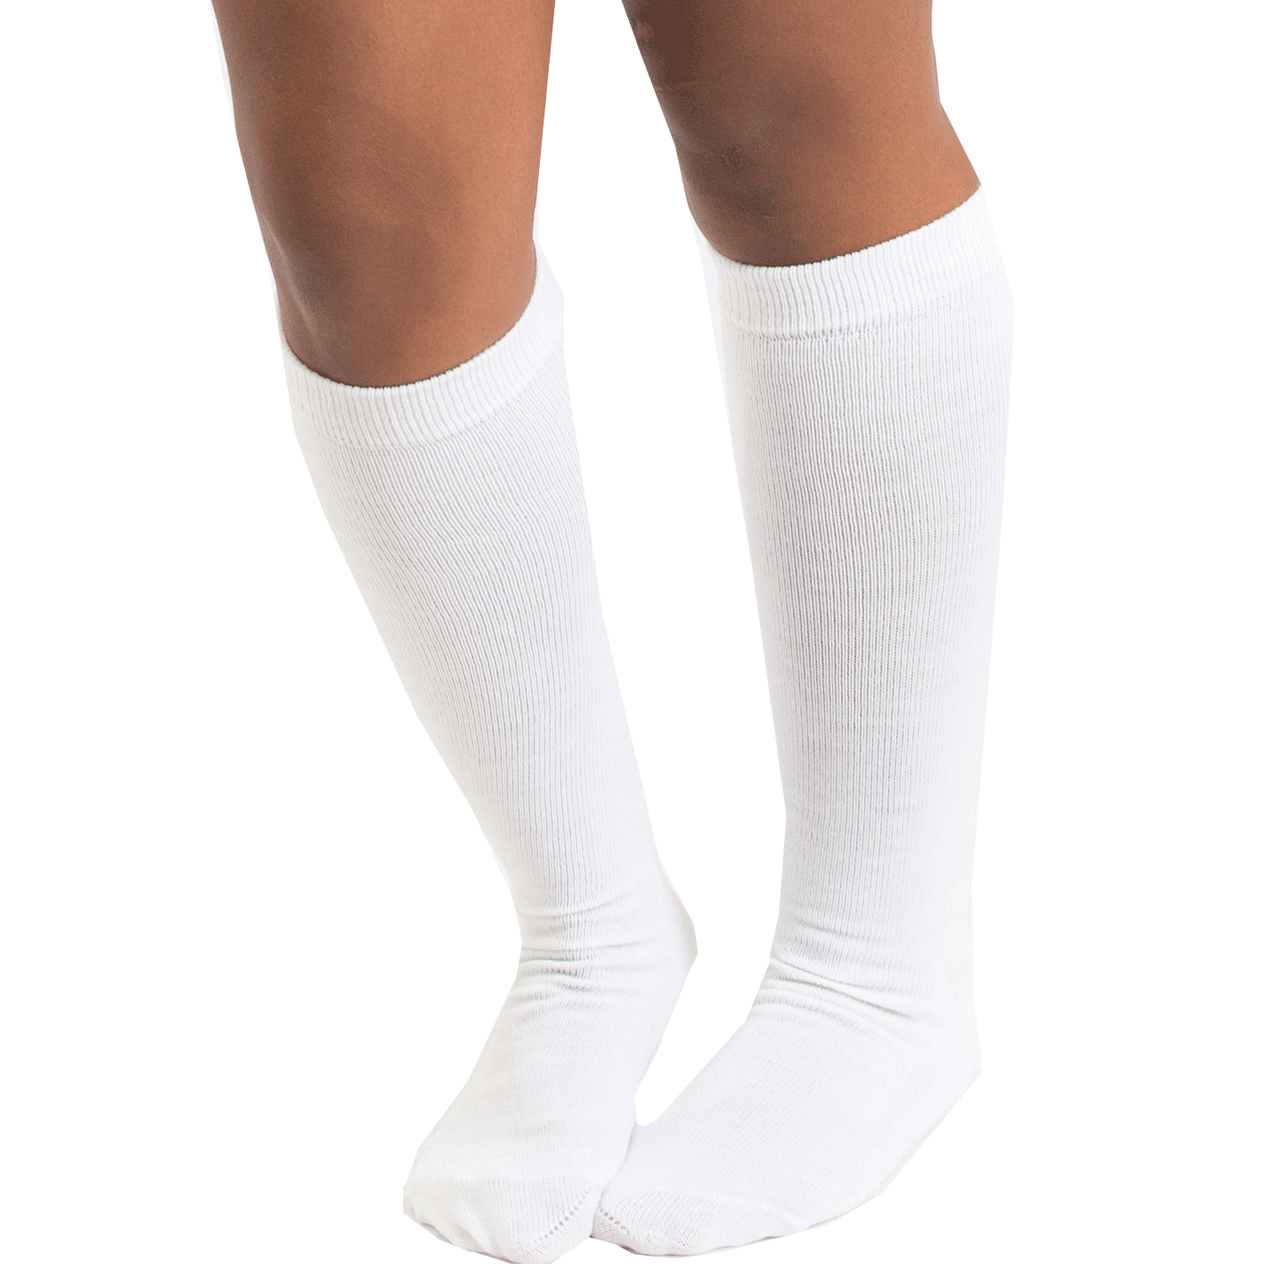 Find great deals on eBay for Mens White Knee High Socks in Men's Socks. Shop with confidence.